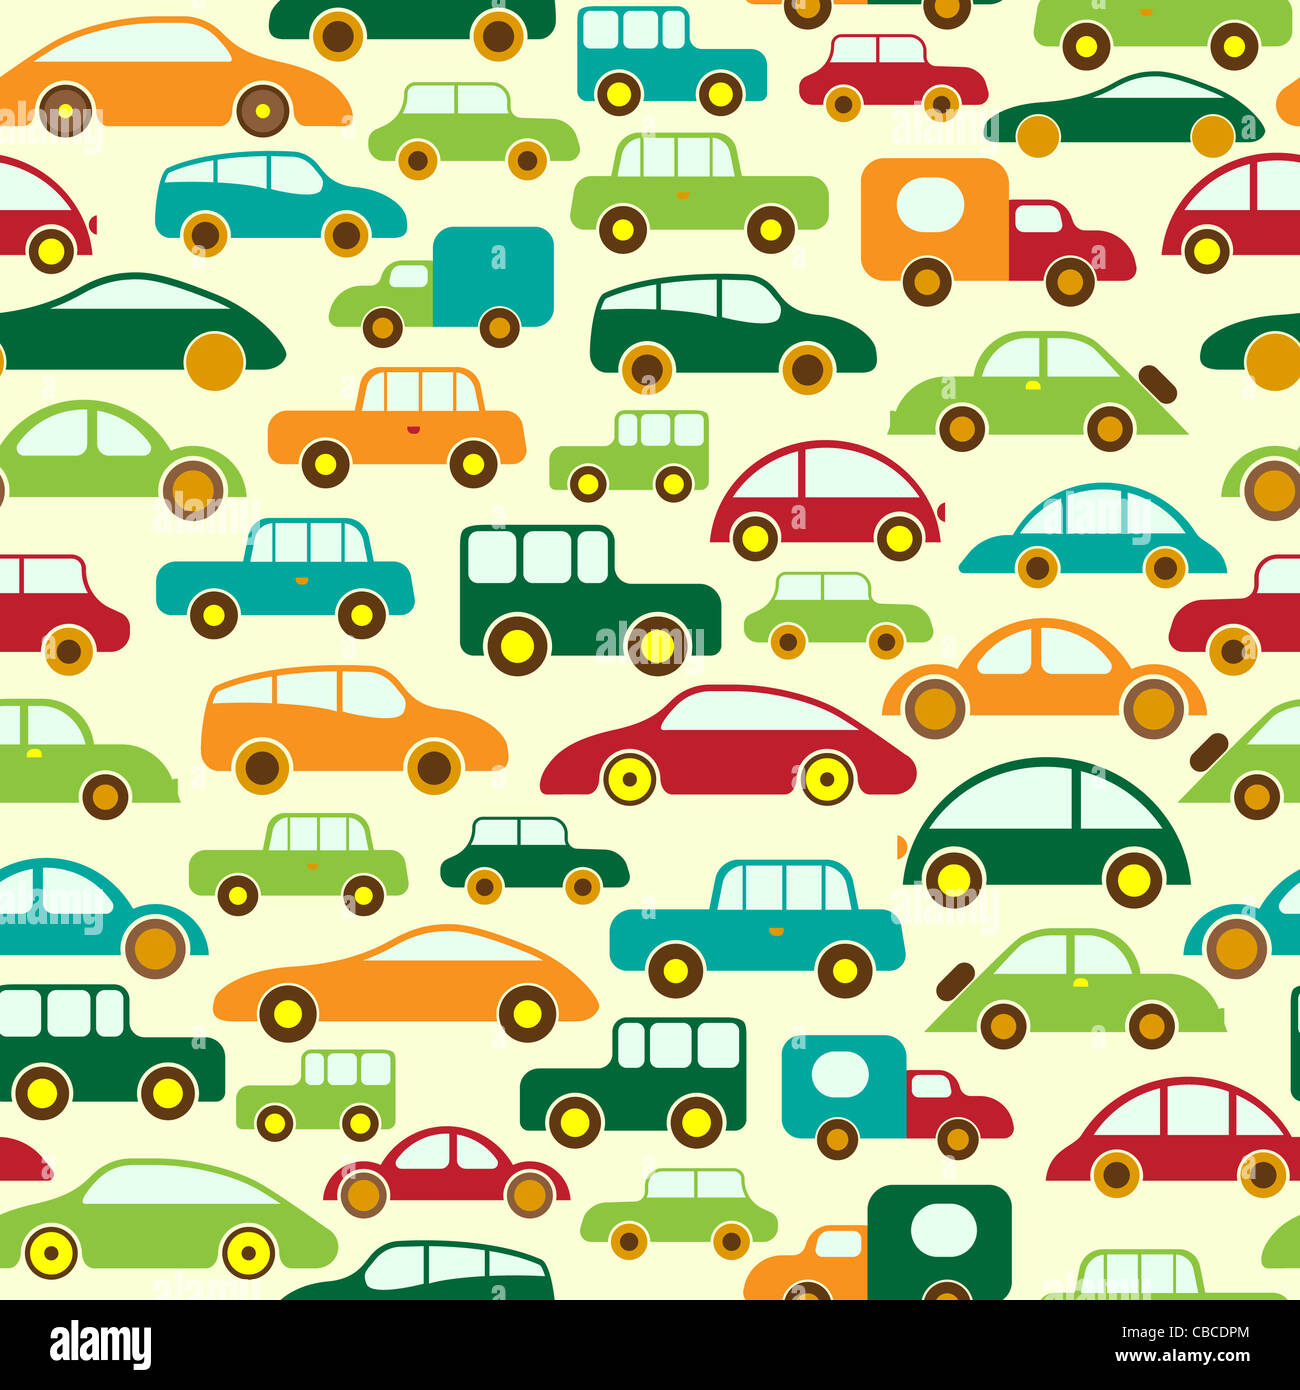 Car Seamless Wallpaper or Background - Stock Image